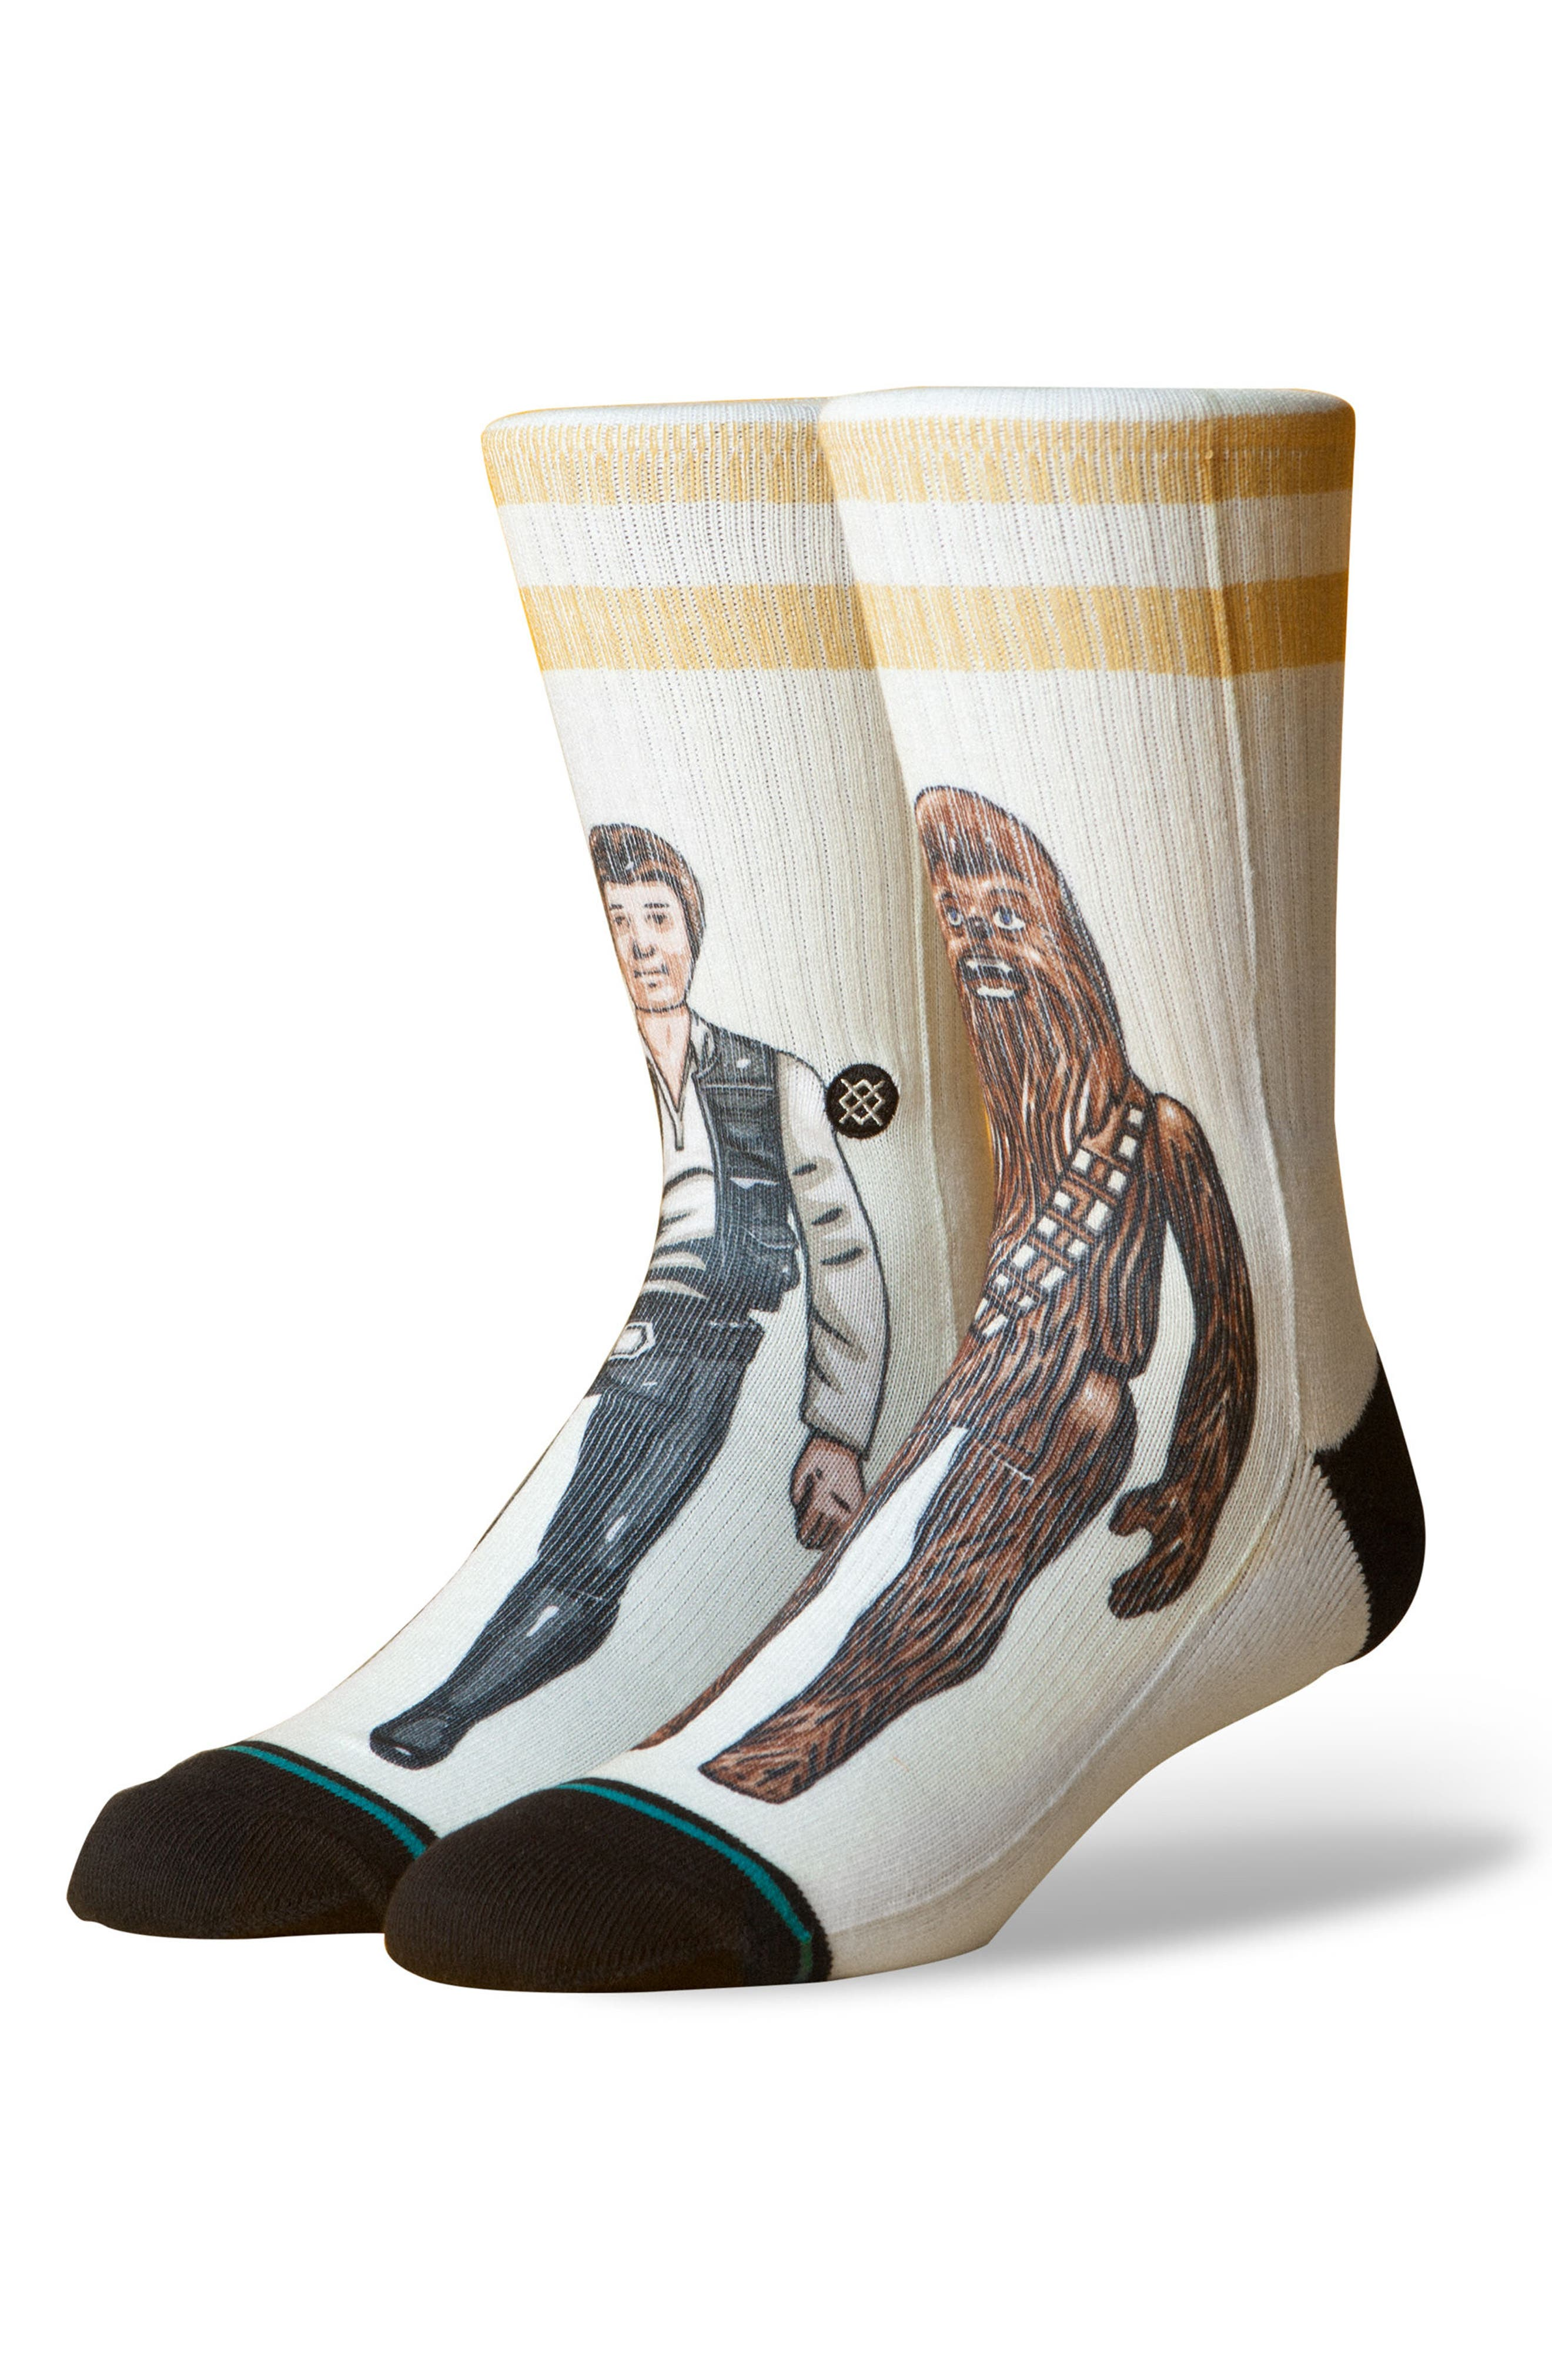 Star Wars<sup>™</sup> Smuggler Trade Socks,                         Main,                         color, 900